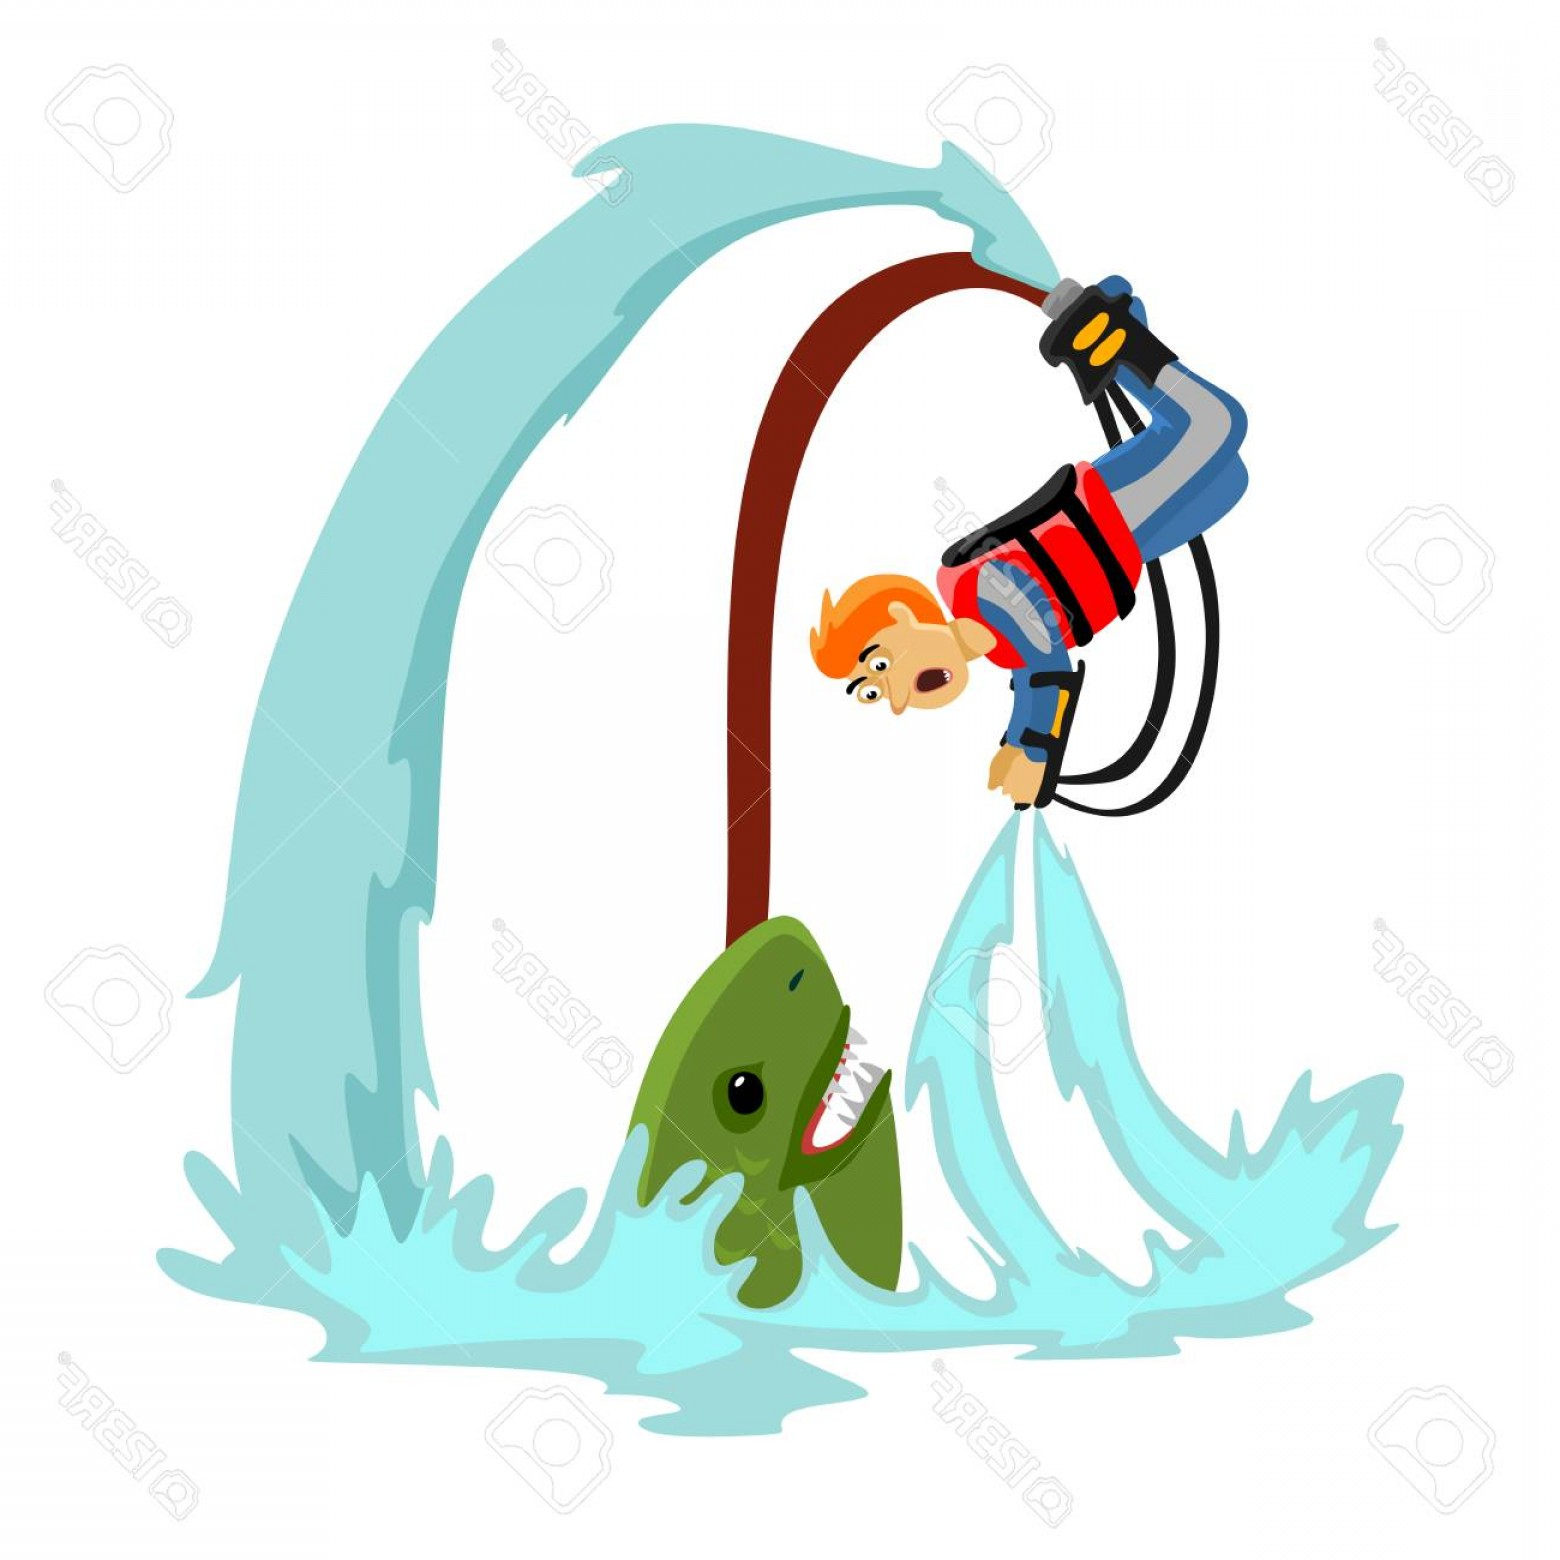 California Lifestyle Vector: Photostock Vector Fly Board Water Extreme Sports Isolated Design Element For Summer Vacation Activity Concept Cartoon